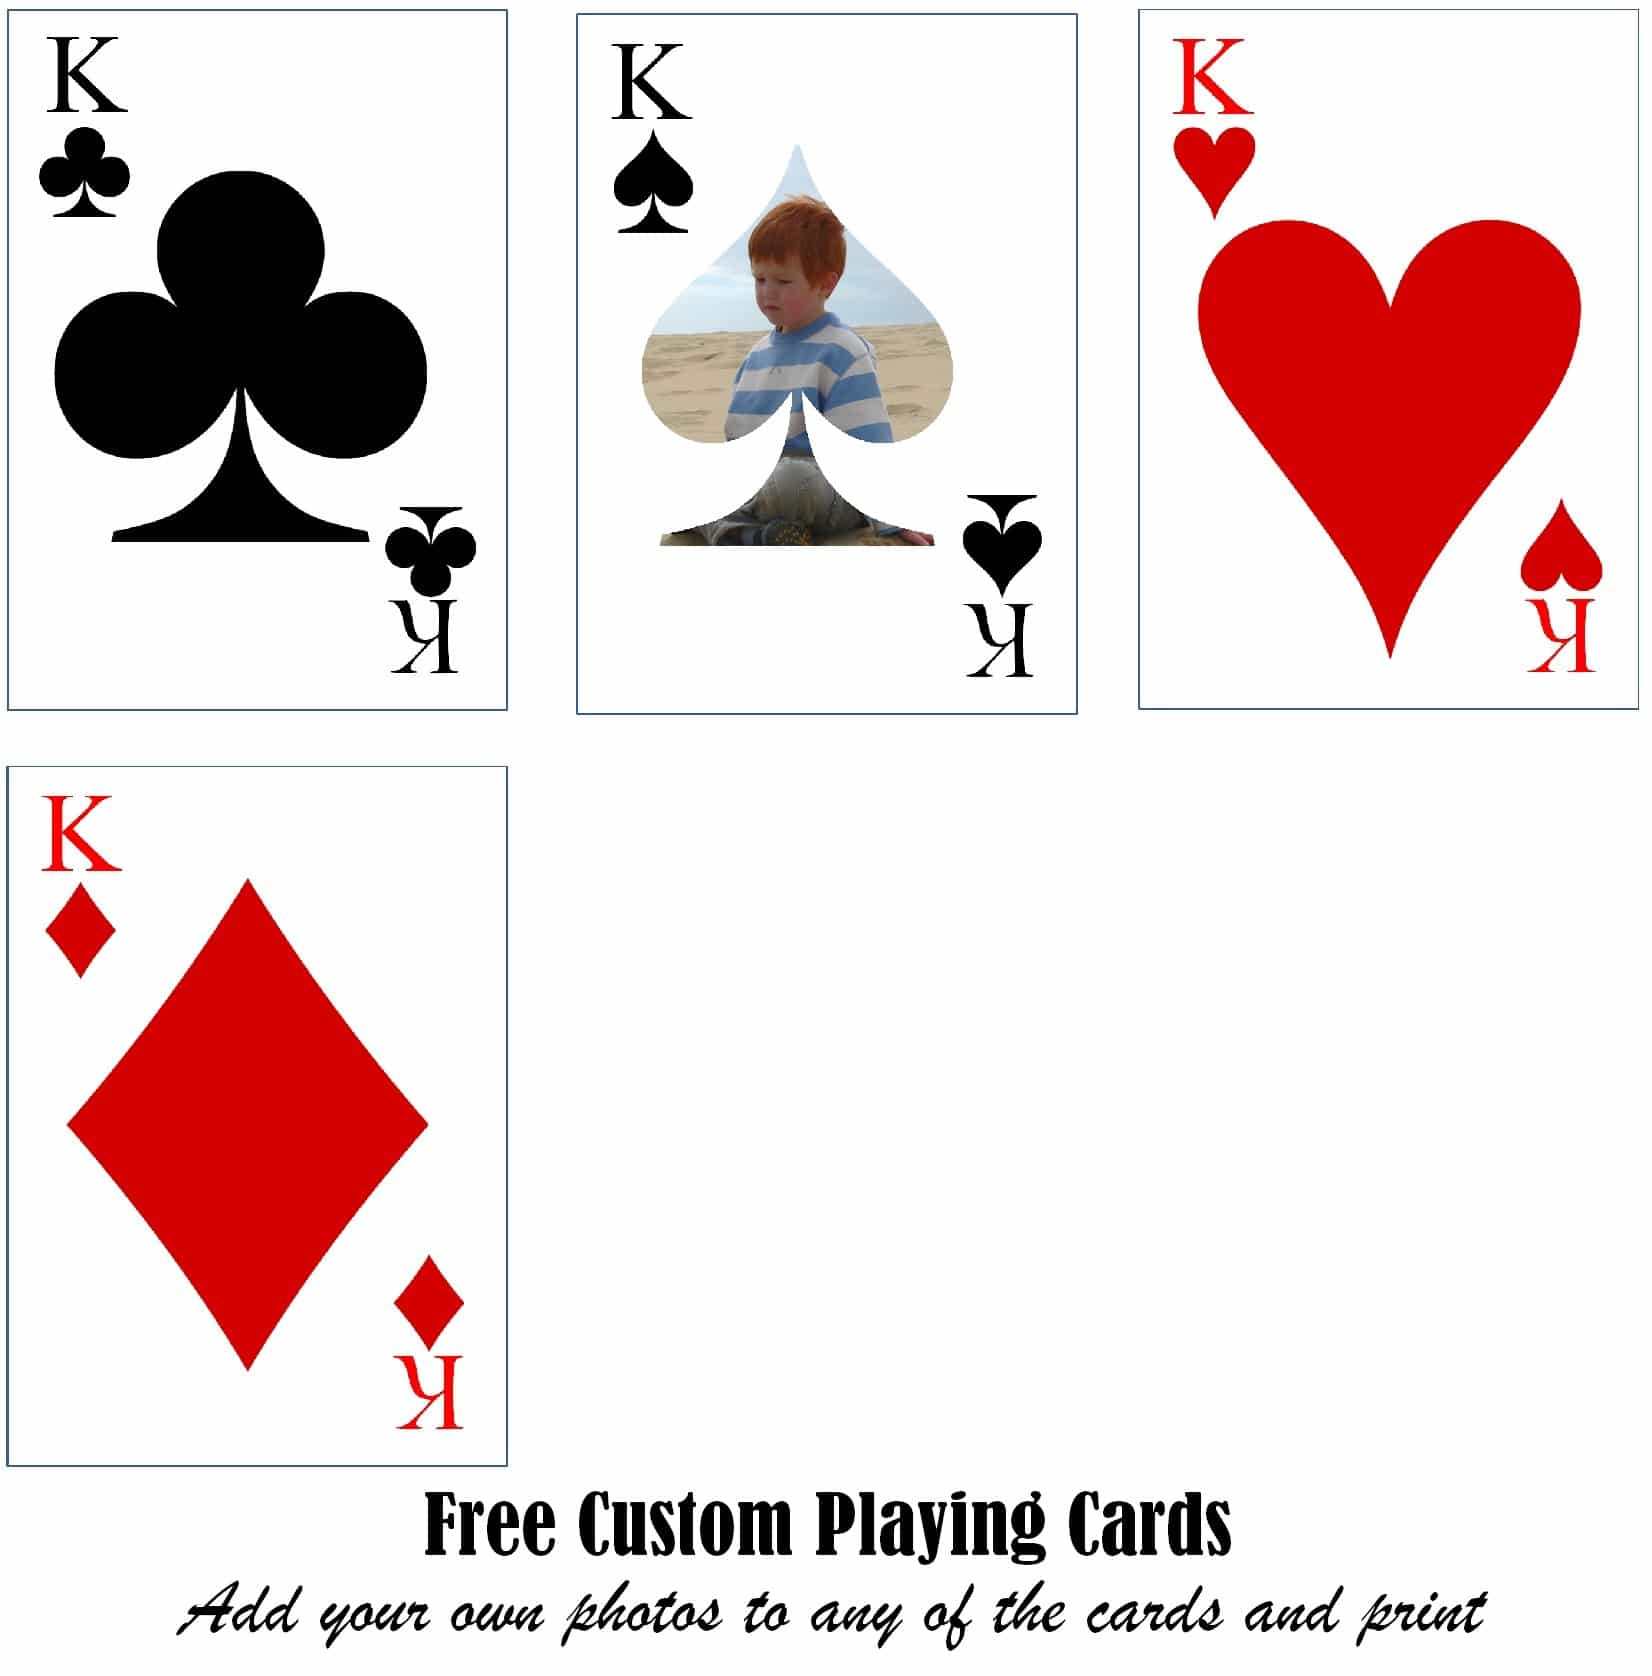 This is an image of Adorable Printable Playing Card